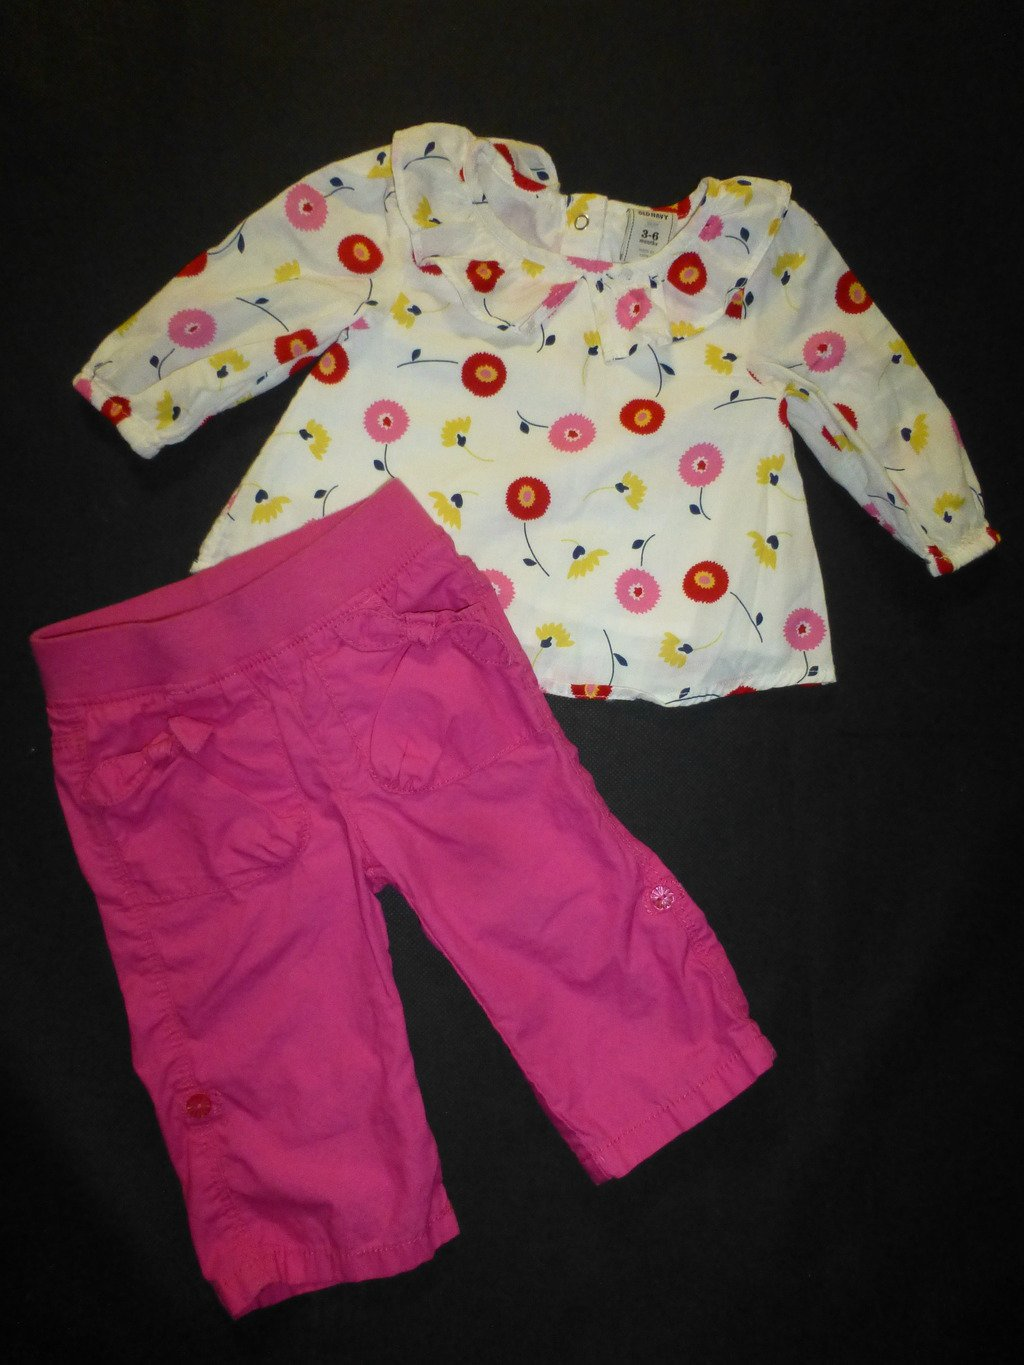 Old Navy Baby Girl White Long Sleeve Floral Tunic Top Pink Pants Outfit 3-6 M